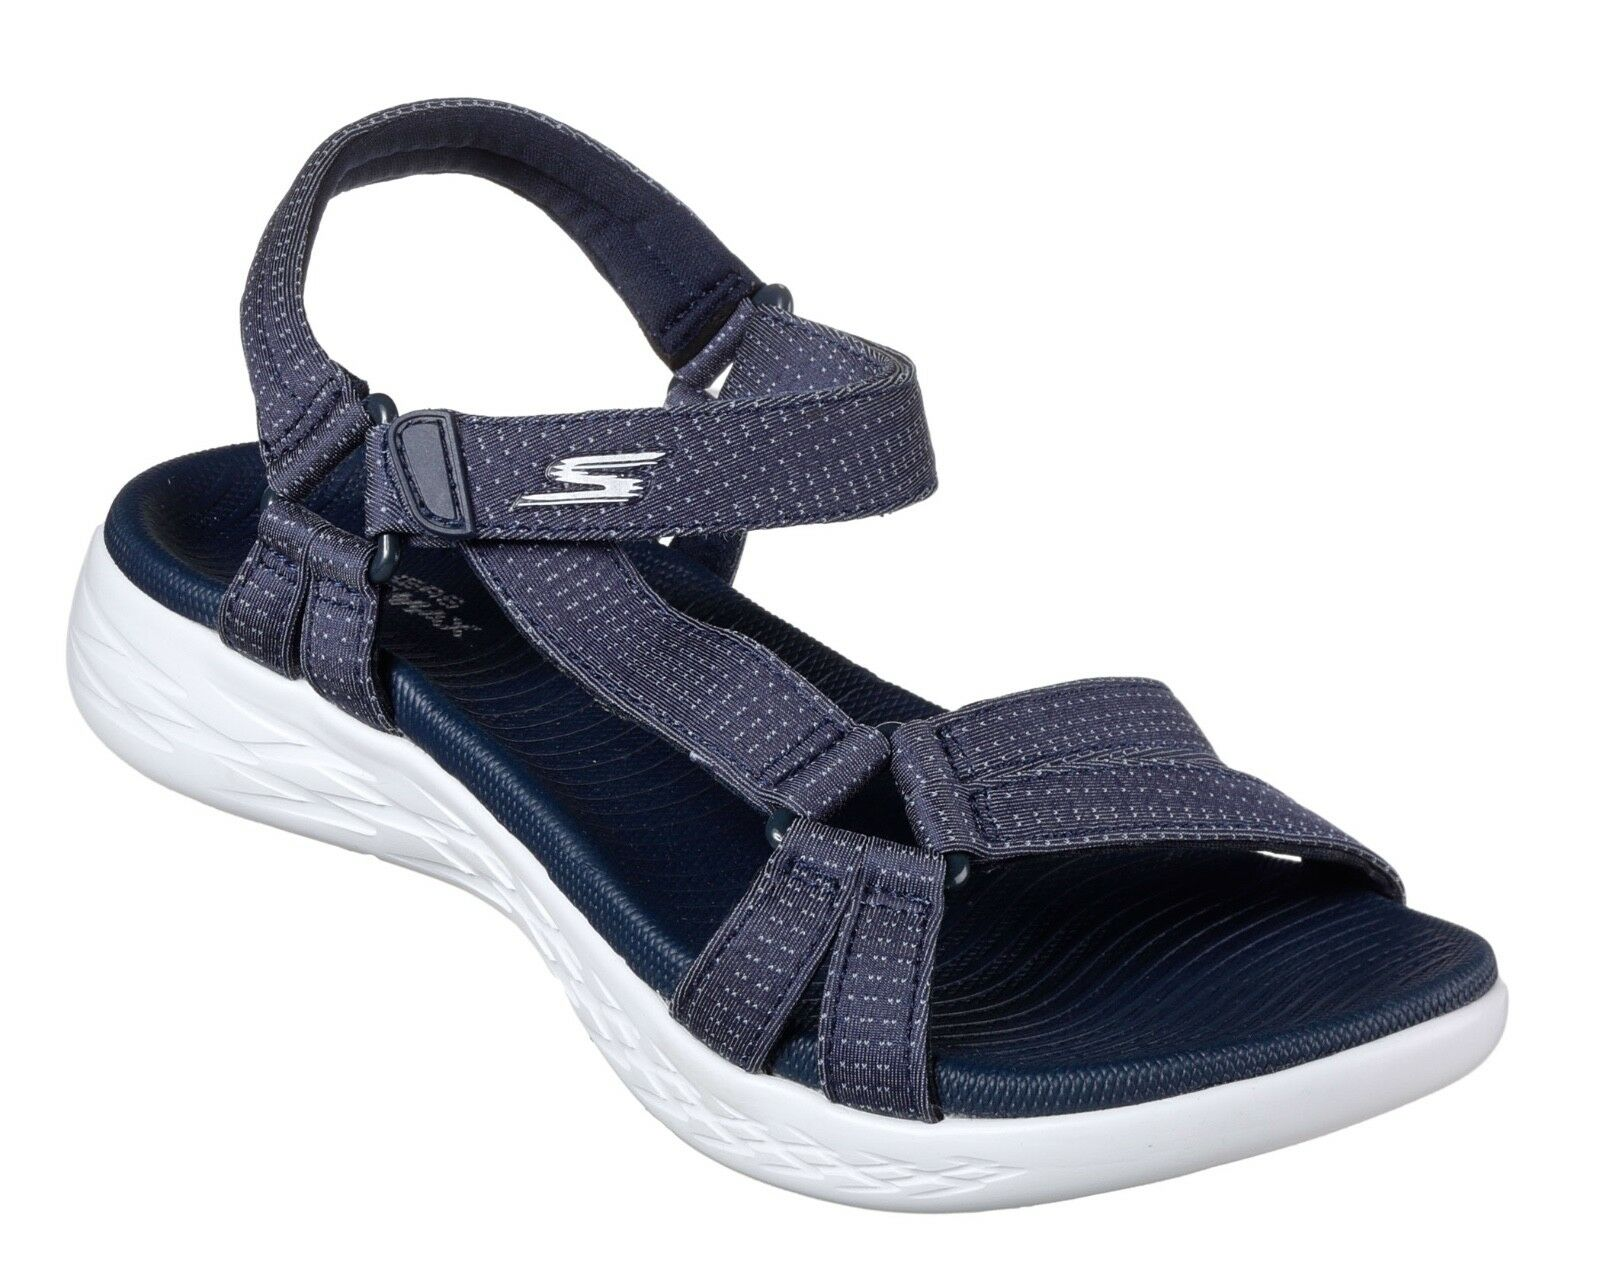 Último gran descuento Skechers NEW On The Go 600 Brilliancy navy comfort strappy sandals sizes 3-8